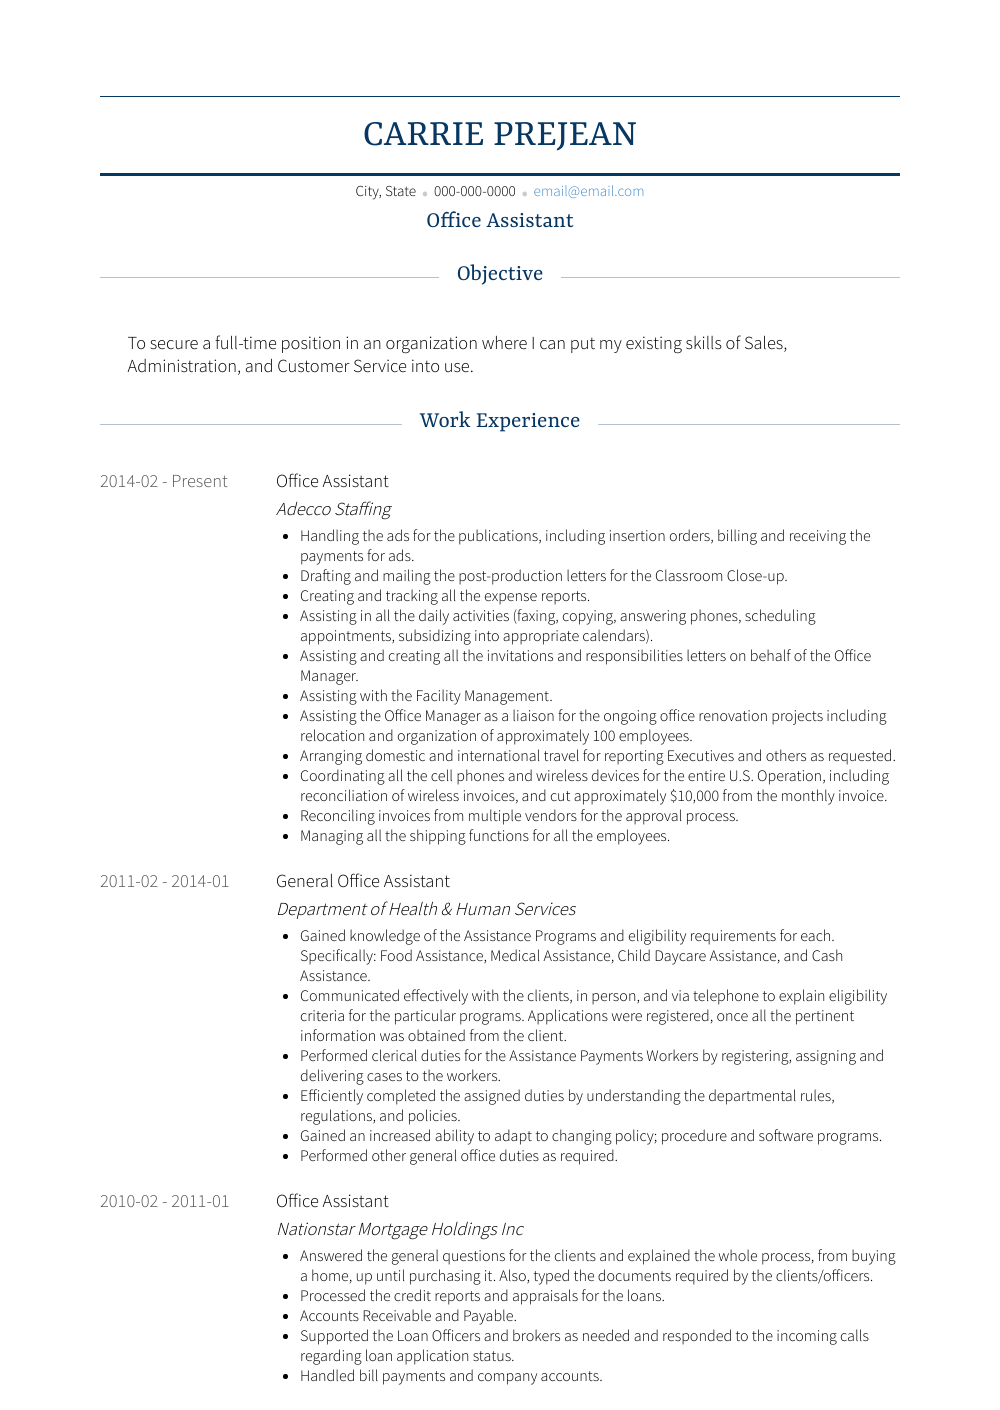 Office Assistant - Resume Samples & Templates | VisualCV